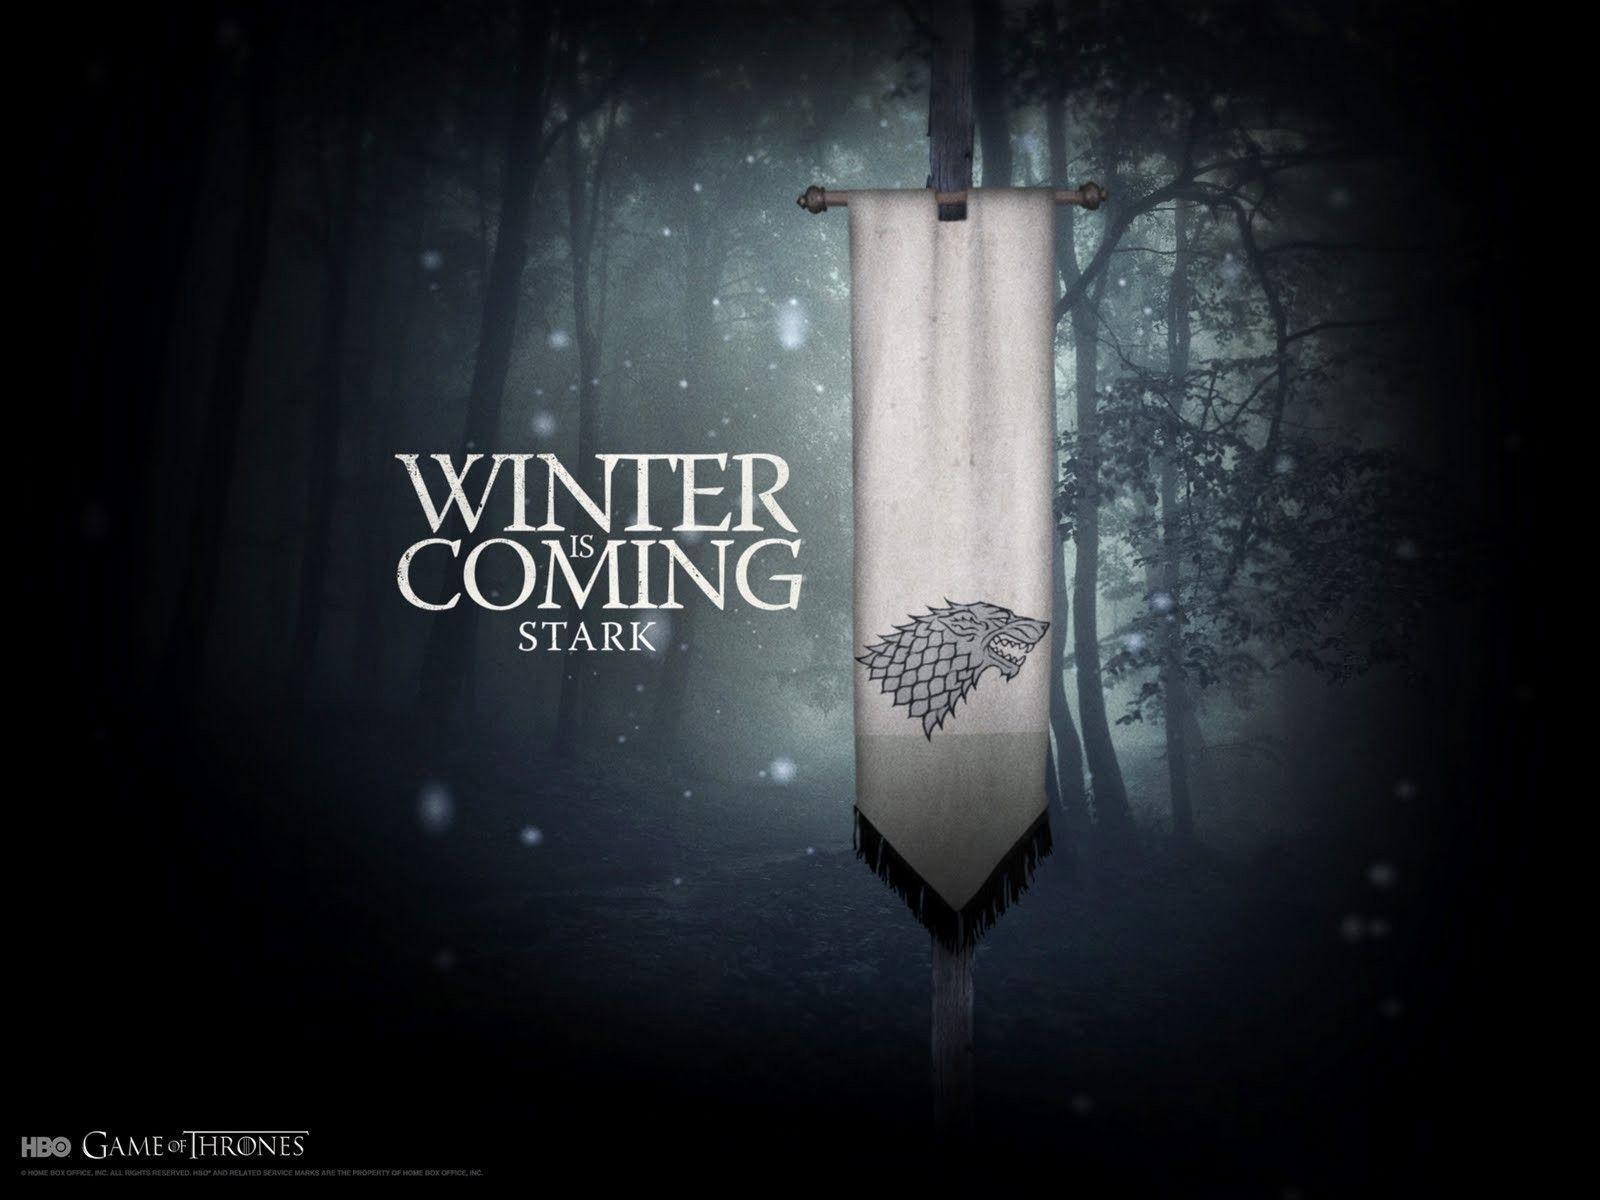 Hbo game of thrones wallpaper